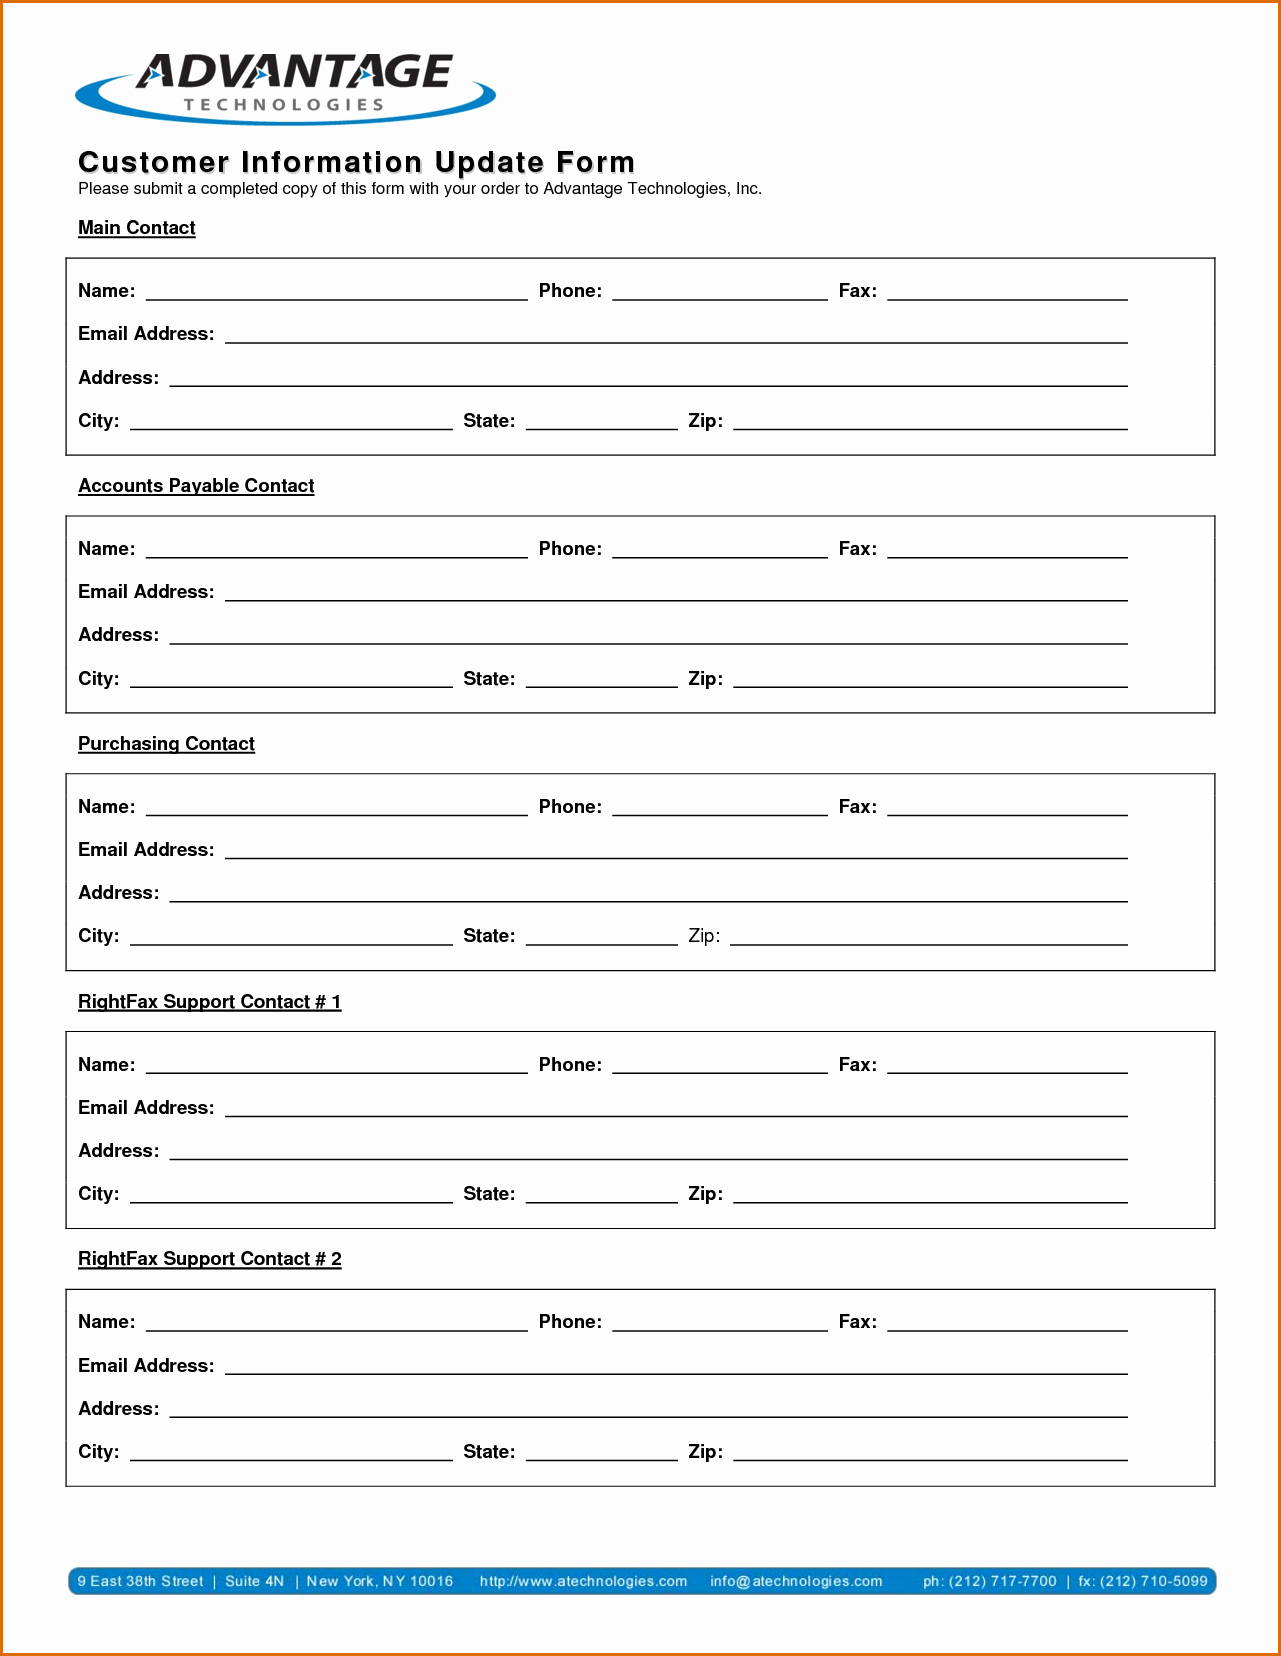 Contact Information form Template Best Of 13 Customer Information form Template